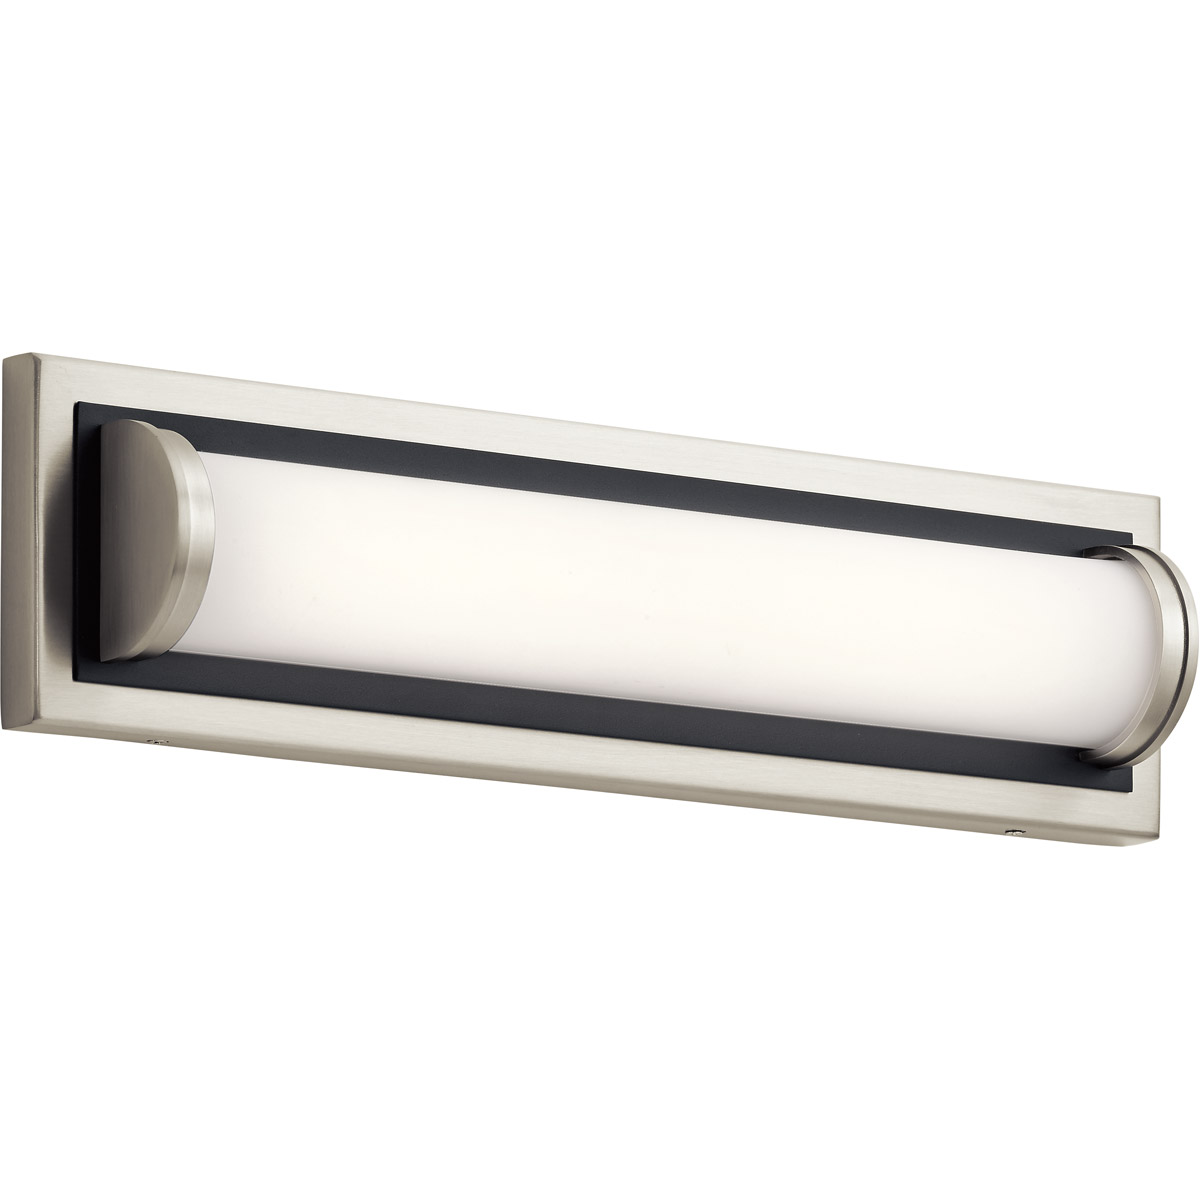 Black Finish Bathroom Lighting: Bathroom Vanity 1 Light With Brushed Nickel With Black